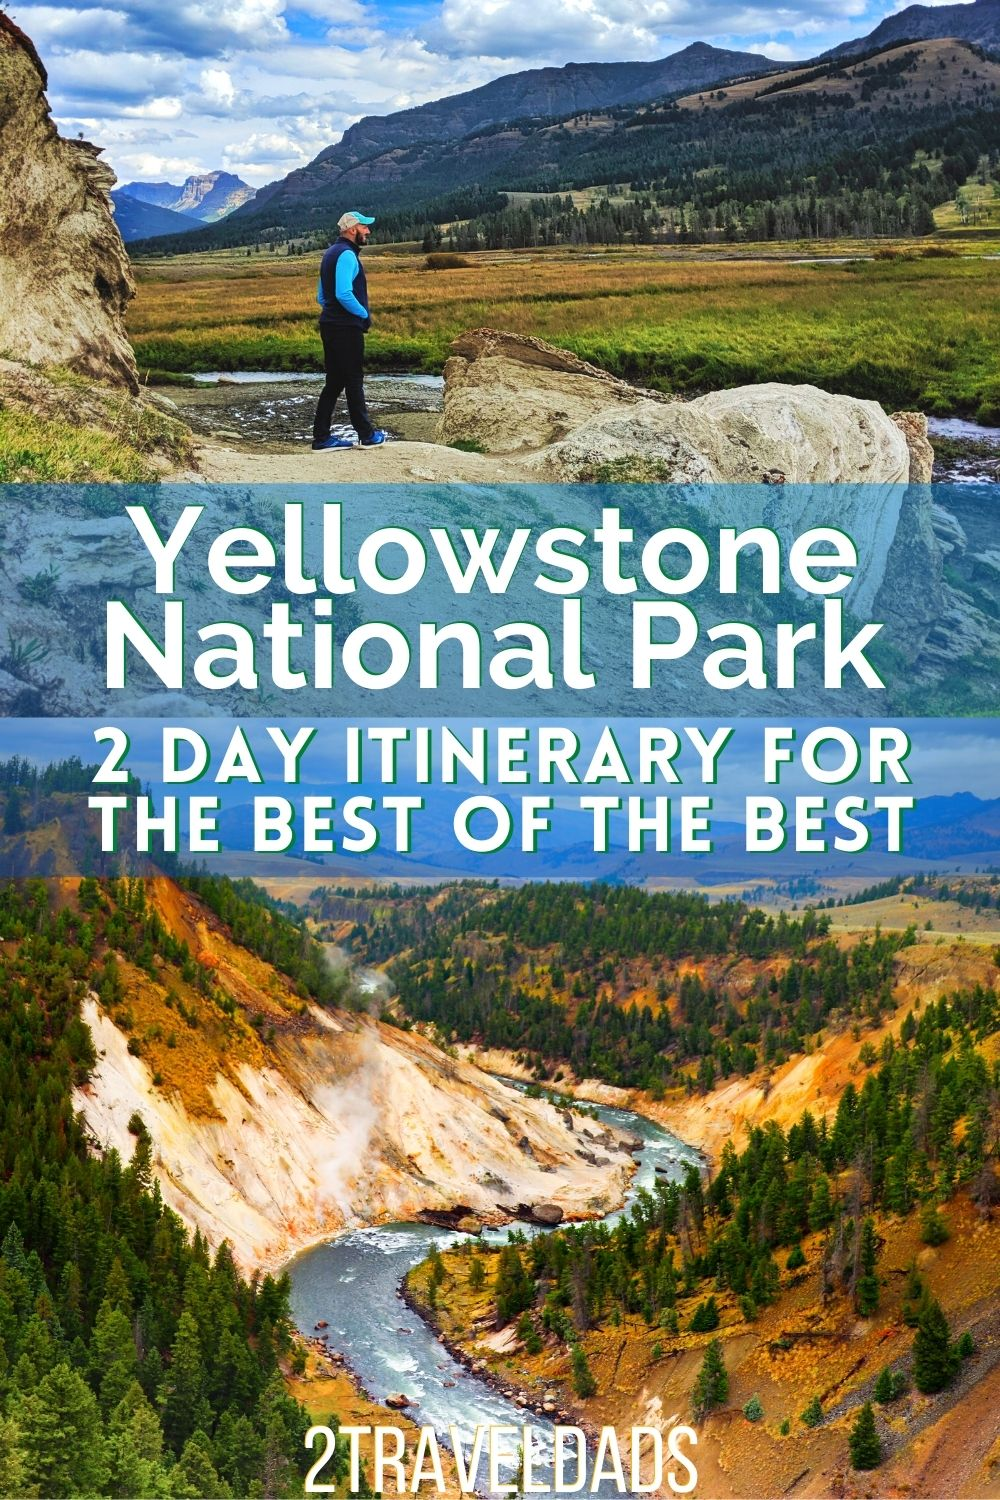 Our 2 Day Best of Yellowstone National Park itinerary: from the Grand Canyon of Yellowstone, Norris Geysers, Old Faithful and Yellowstone Lake, each itinerary route is its own day in the park and covers the best sights and tips for enjoying driving through Yellowstone National Park.